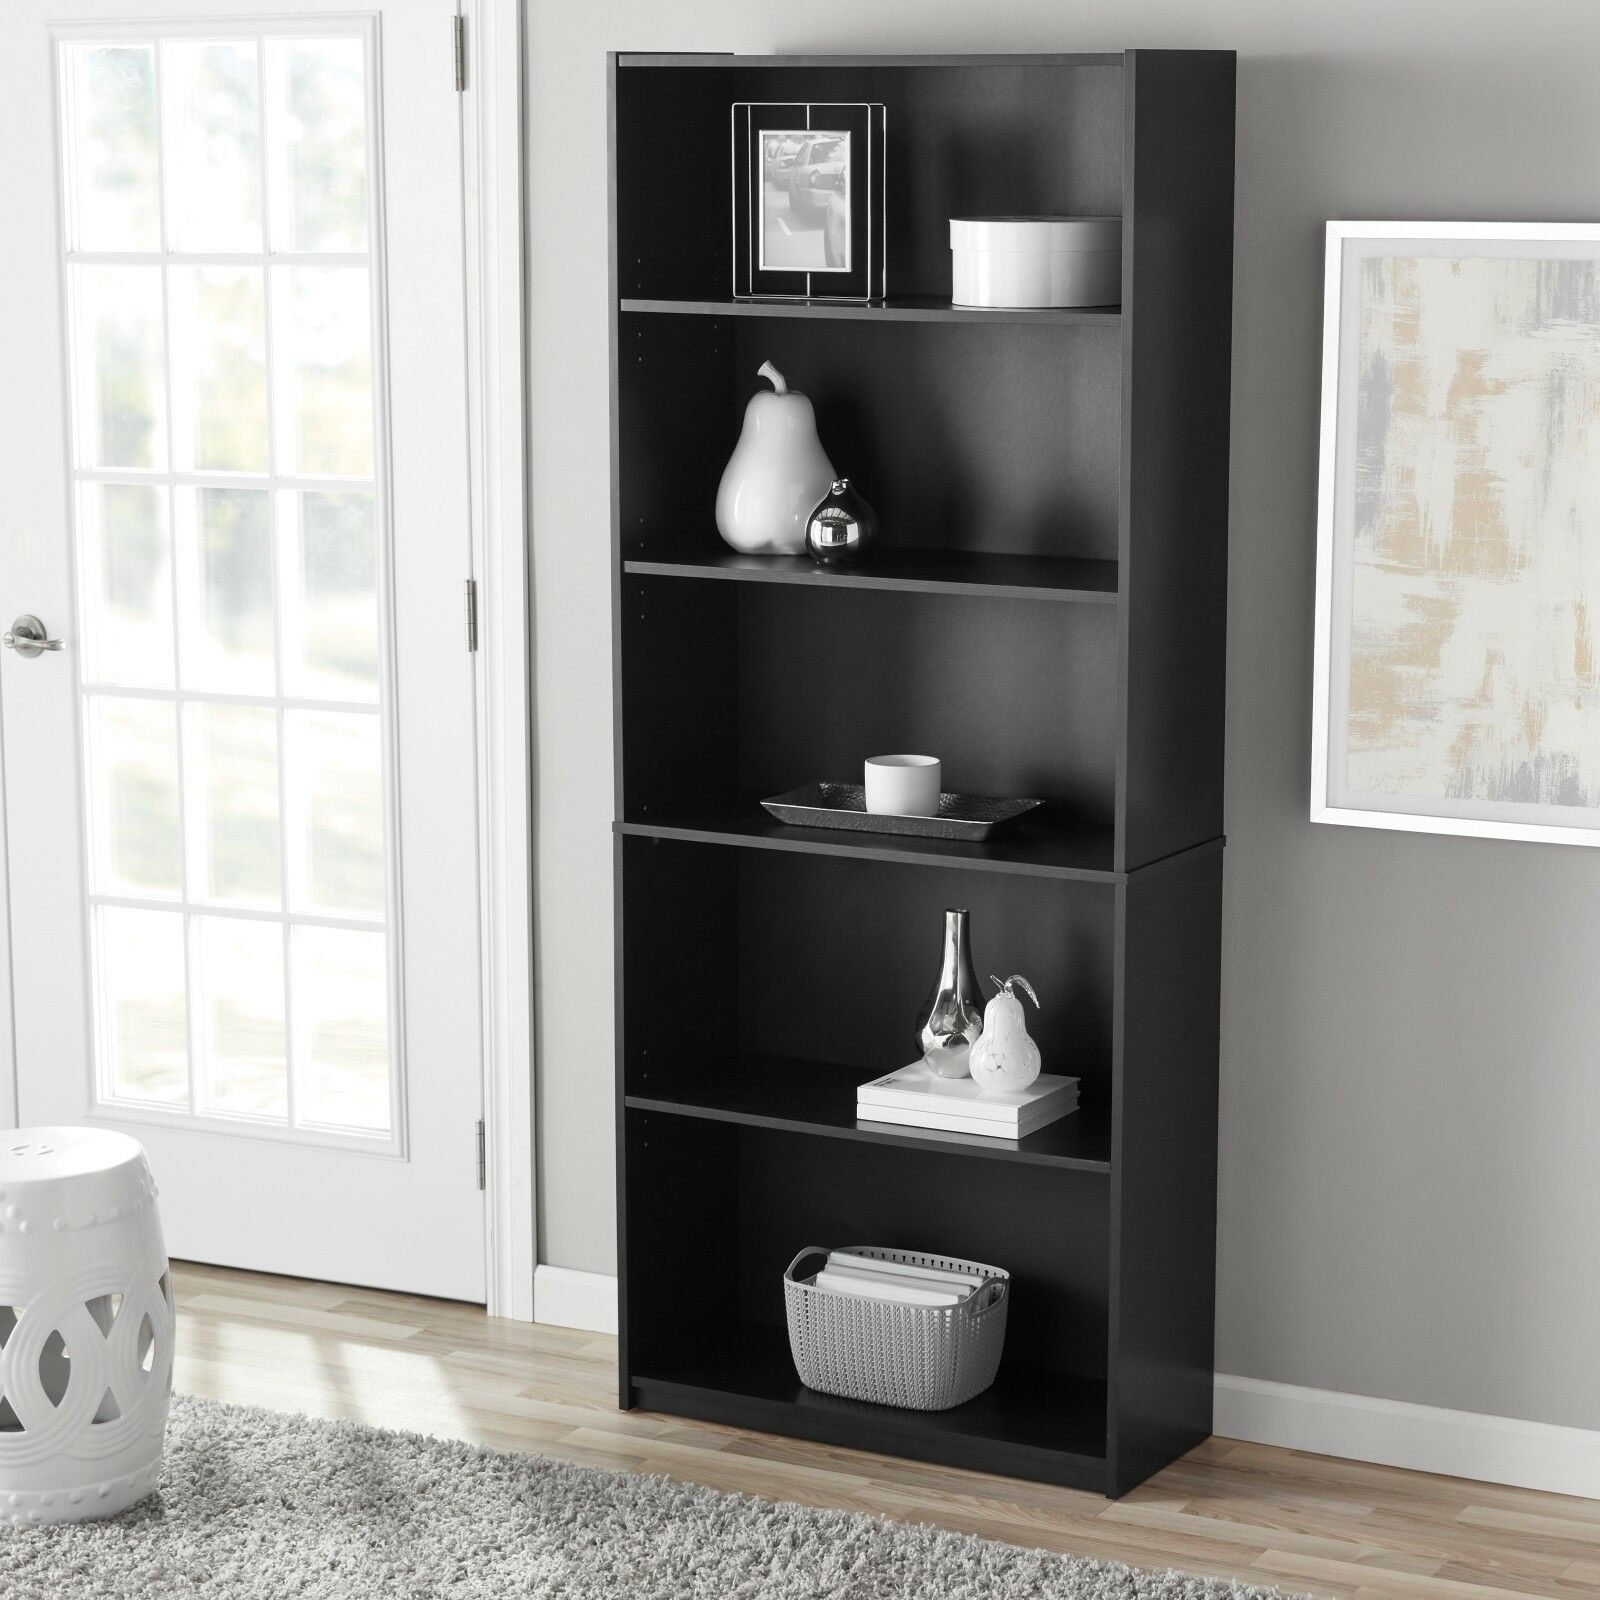 5-Shelf Adjustable Wood Bookcase Book Storage Shelving Books